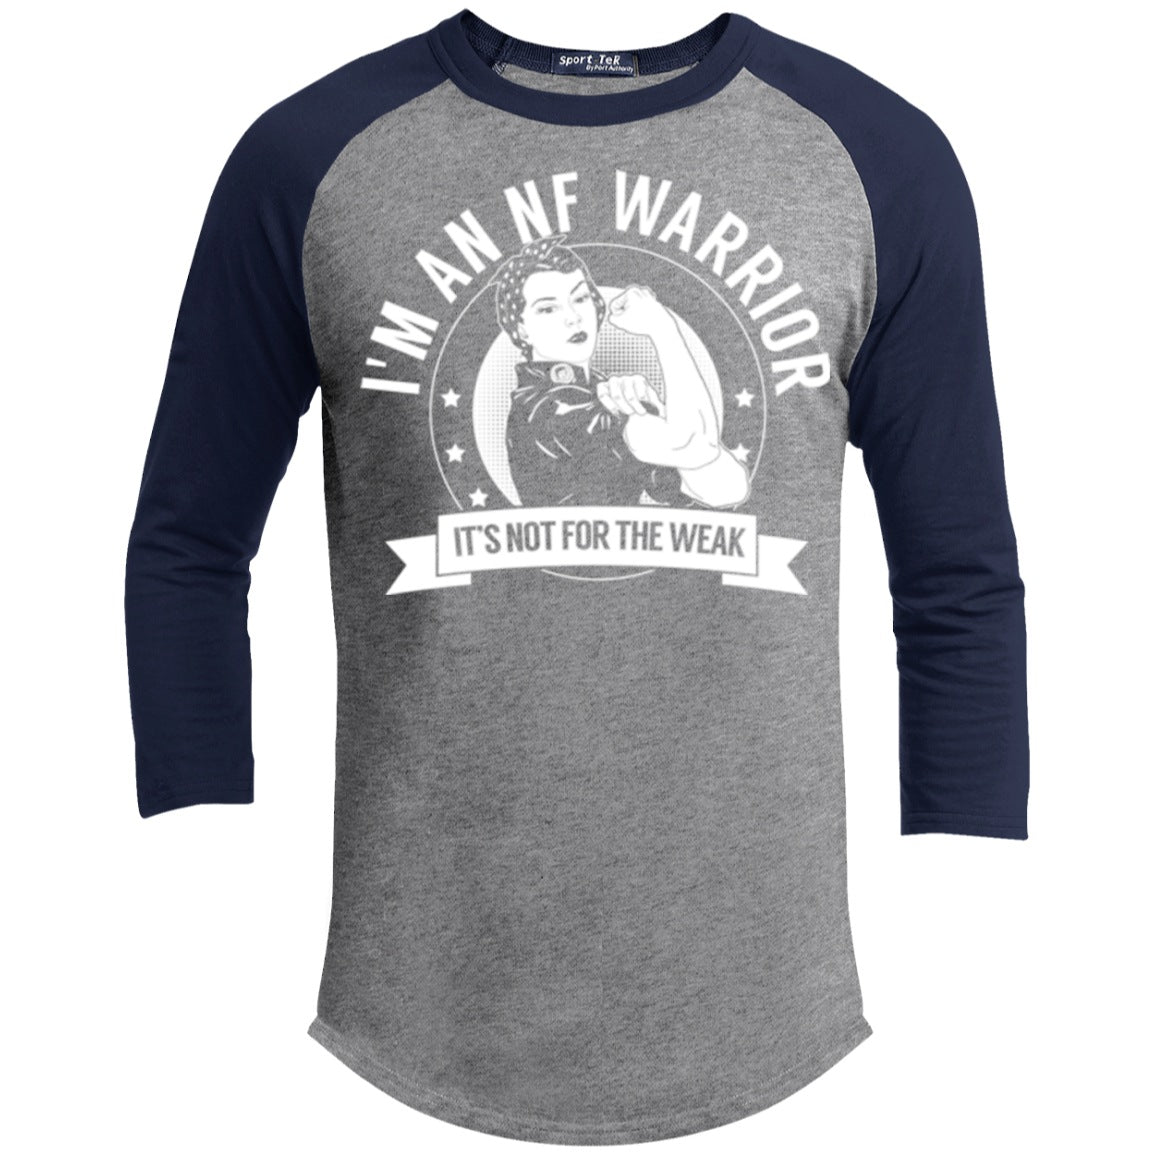 Neurofibromatosis - NF Warrior Not For The Weak Baseball Shirt - The Unchargeables